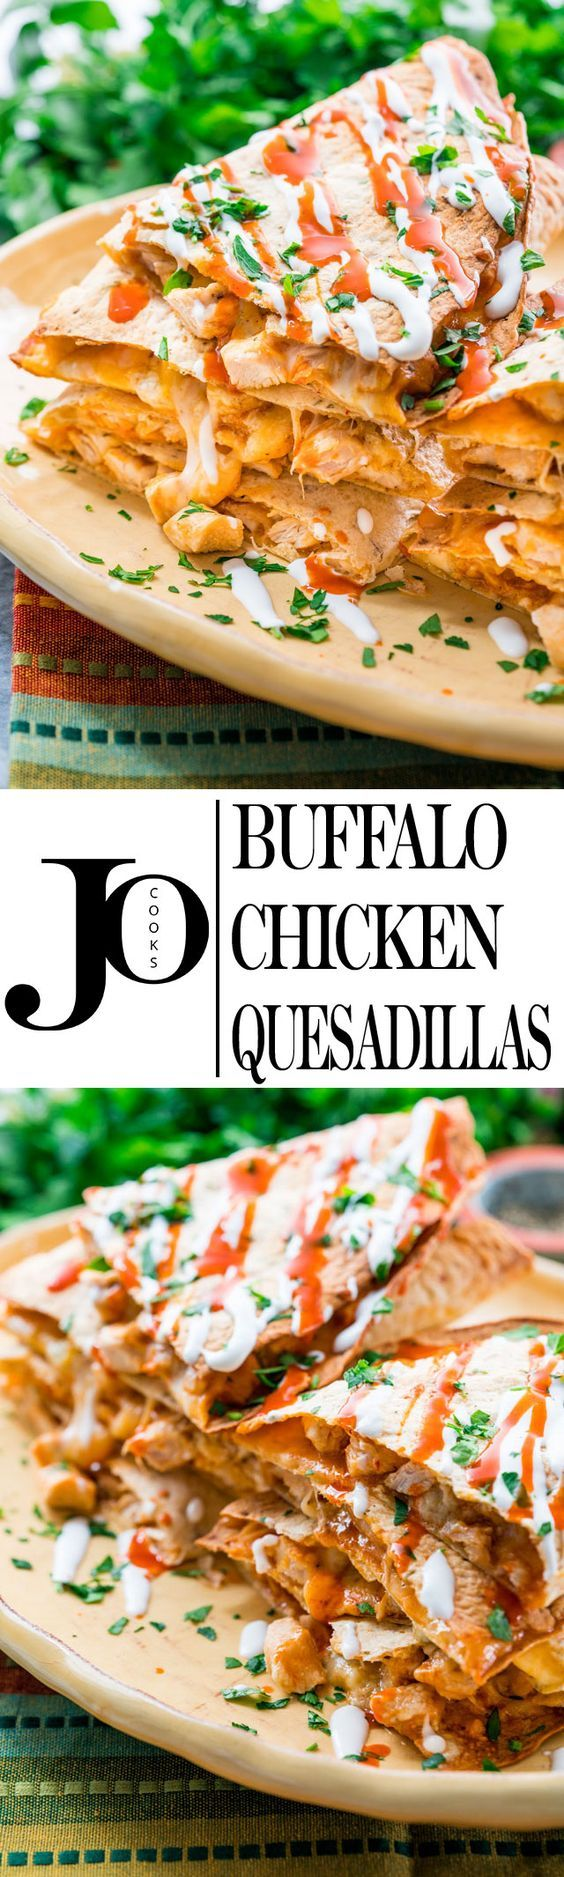 These Buffalo Chicken Quesadillas will give you the bold flavors of buffalo chicken wings with gooey melted cheese, all packed in a quesadilla! Quick and simple recipe for the best and most delicious quesadillas!